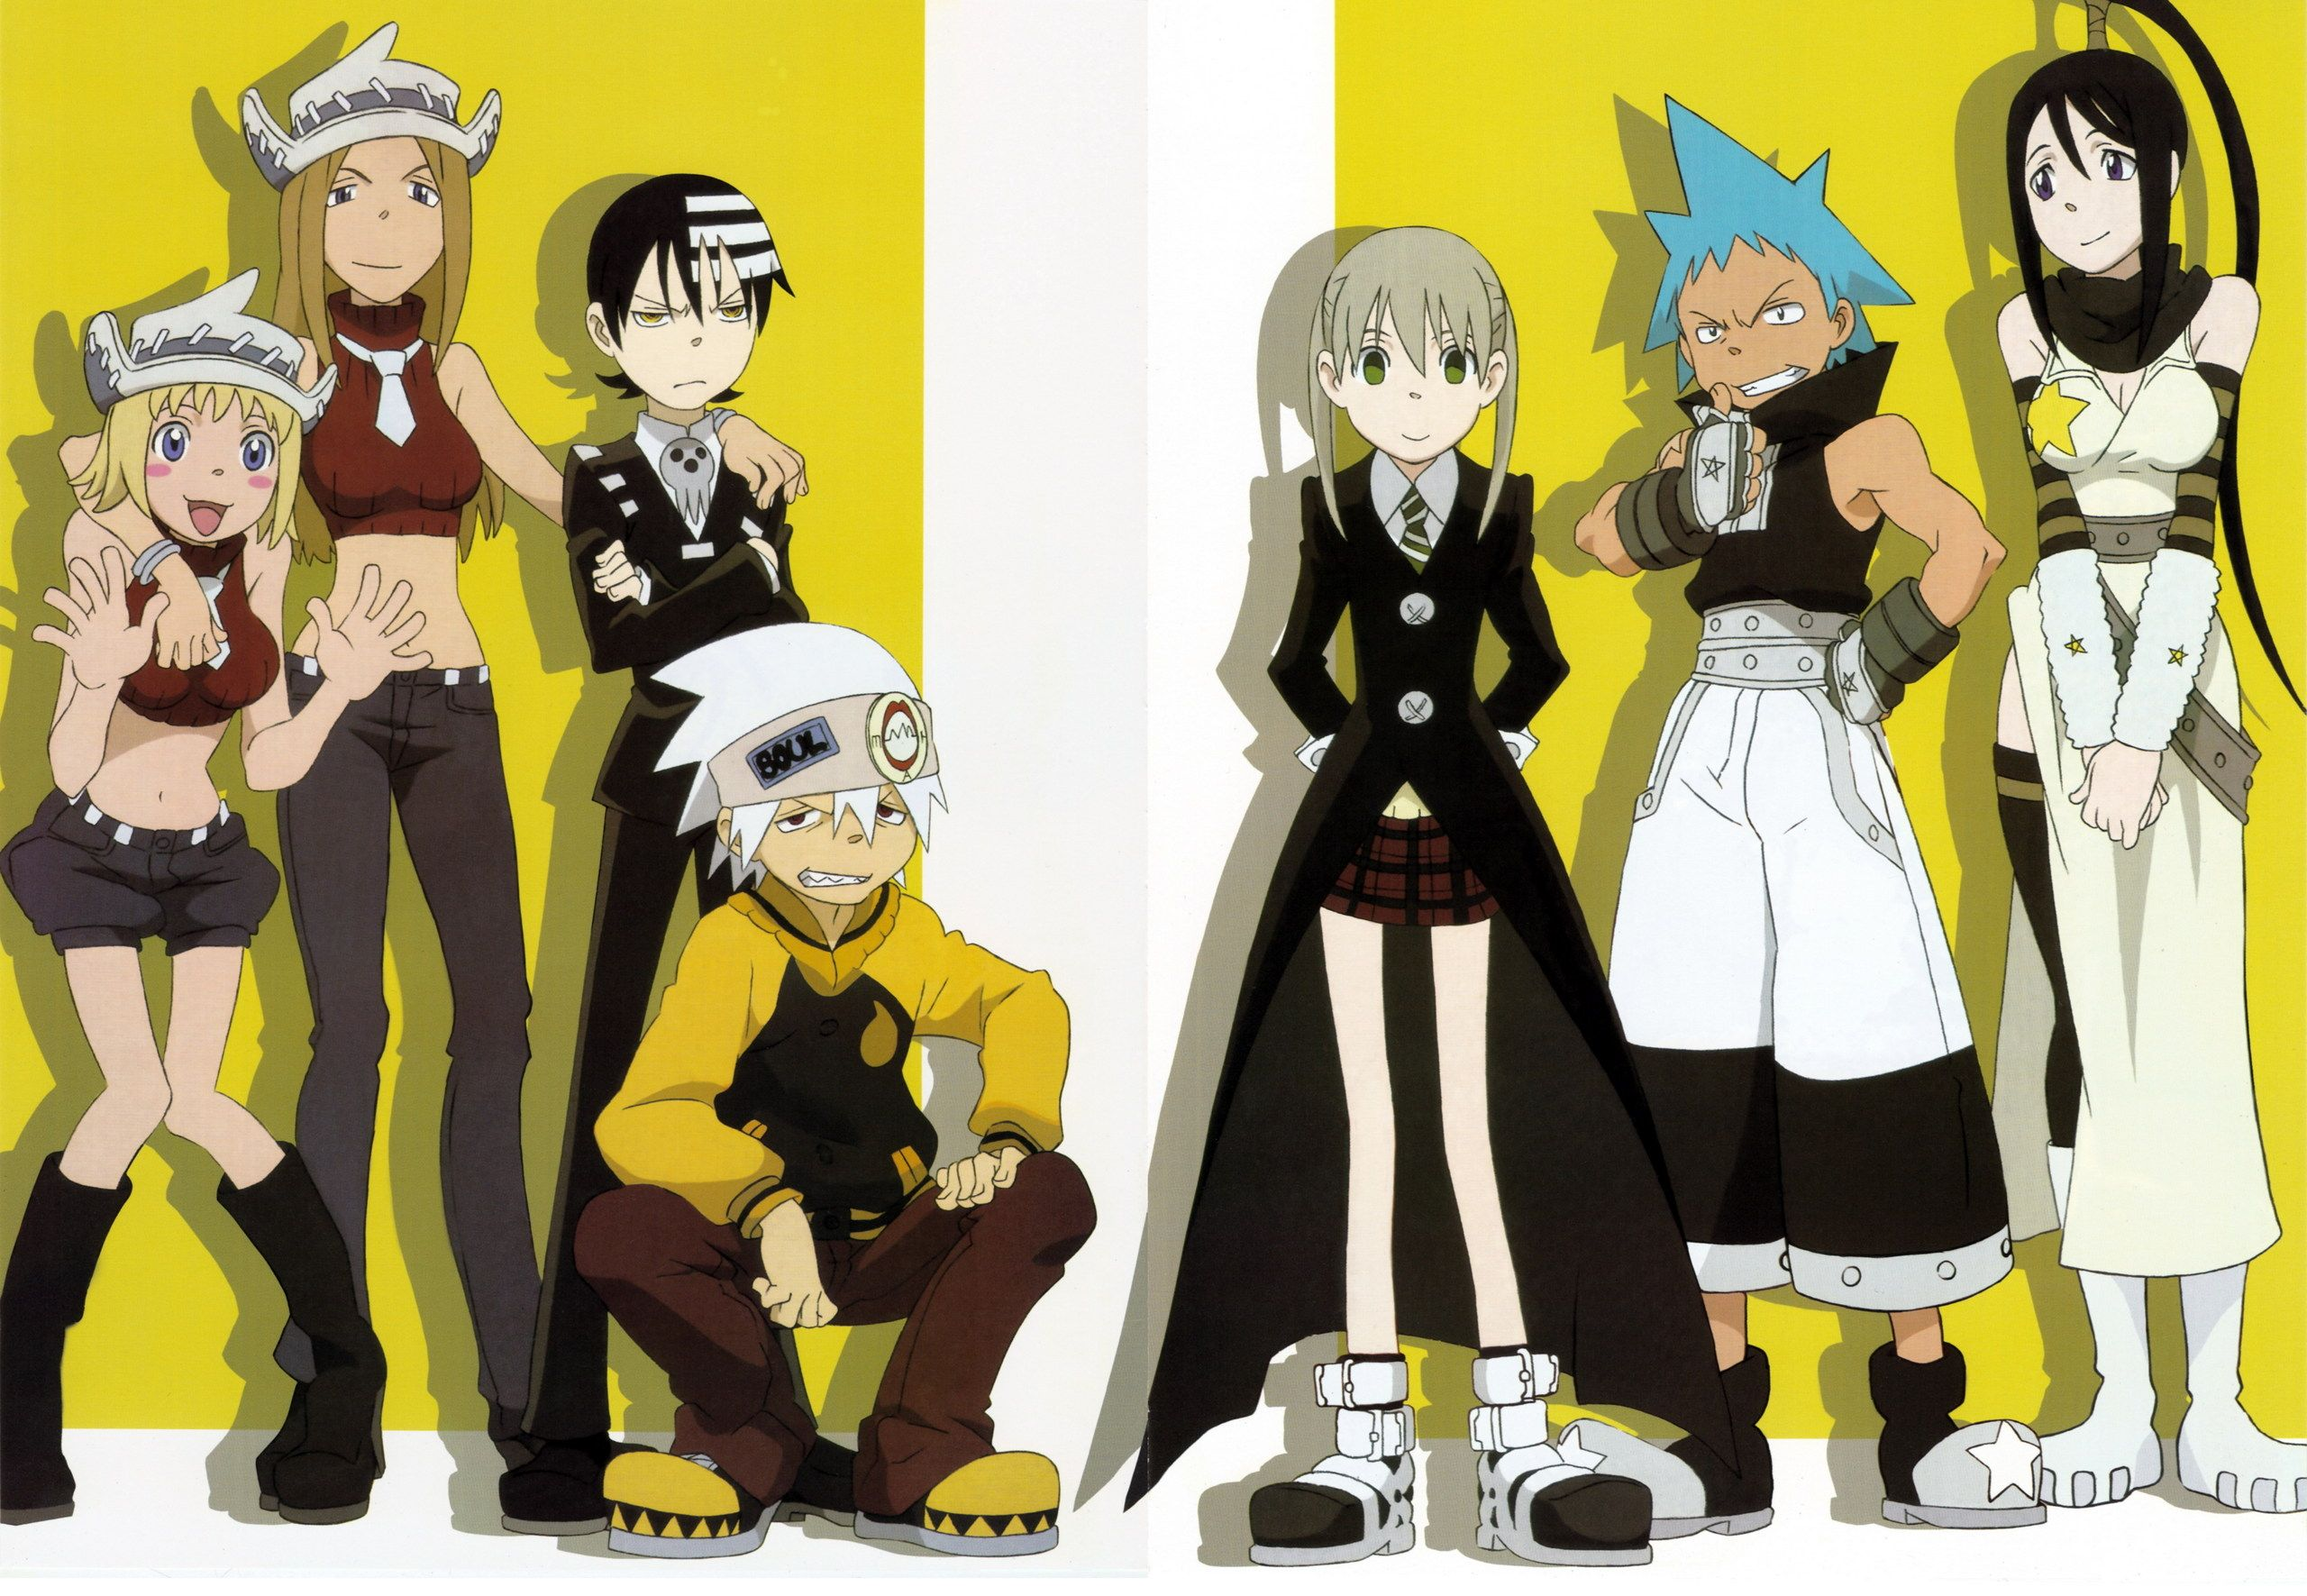 Soul Eater (one of my fave toonami anime) characters